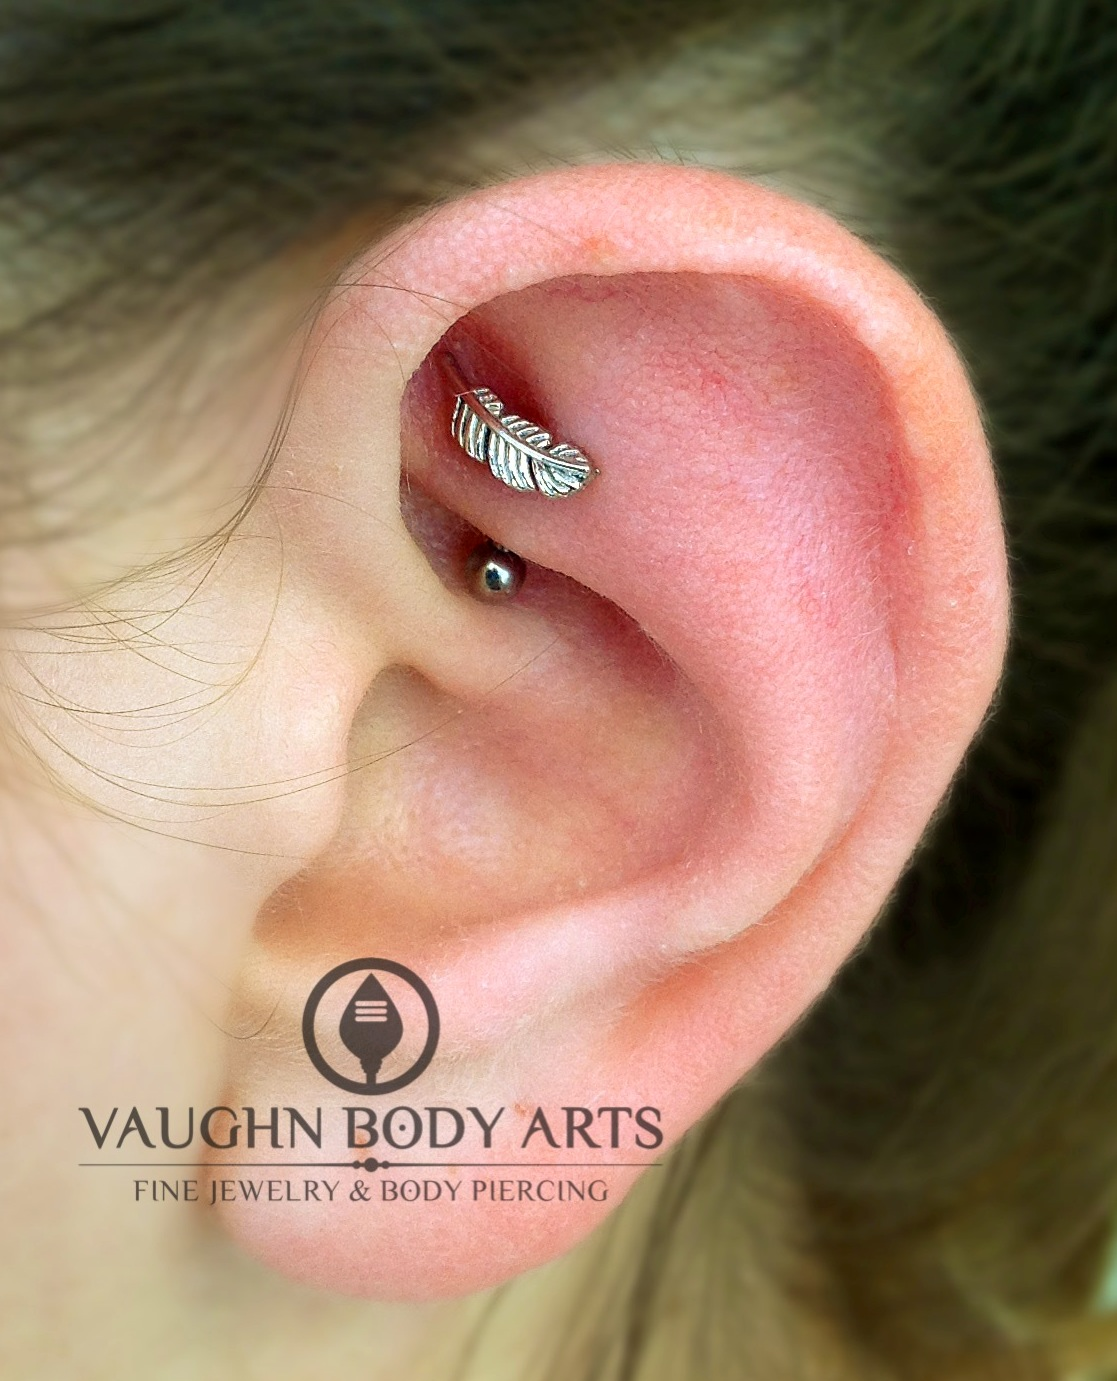 Rook piercing with a 14k white gold feather end from BVLA.